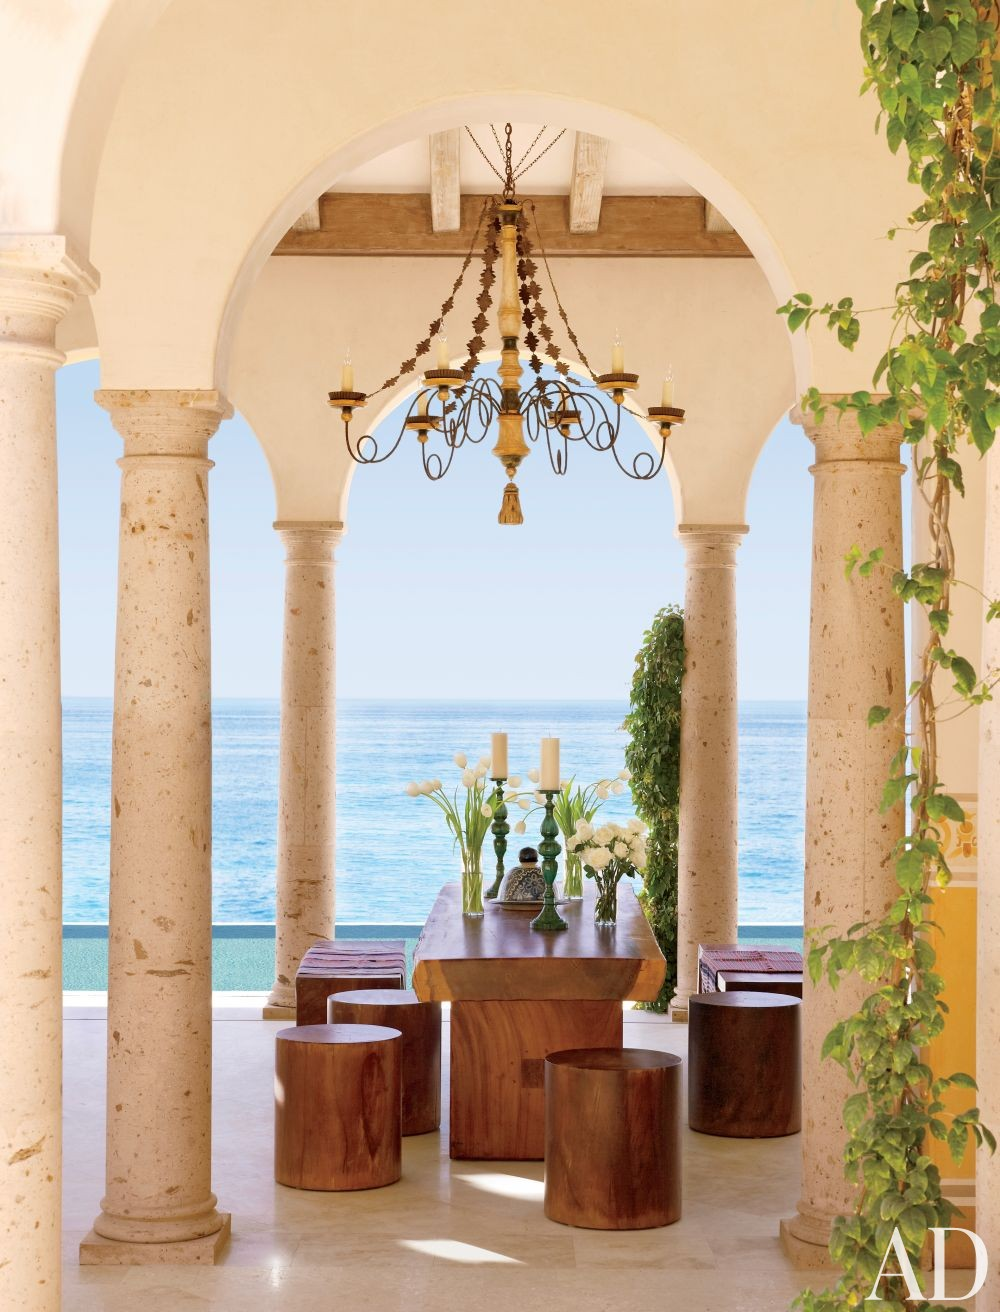 Exotic Dining Room by Marshall Watson Interiors and Stephen Morgan Architect in San José del Cabo, Mexico